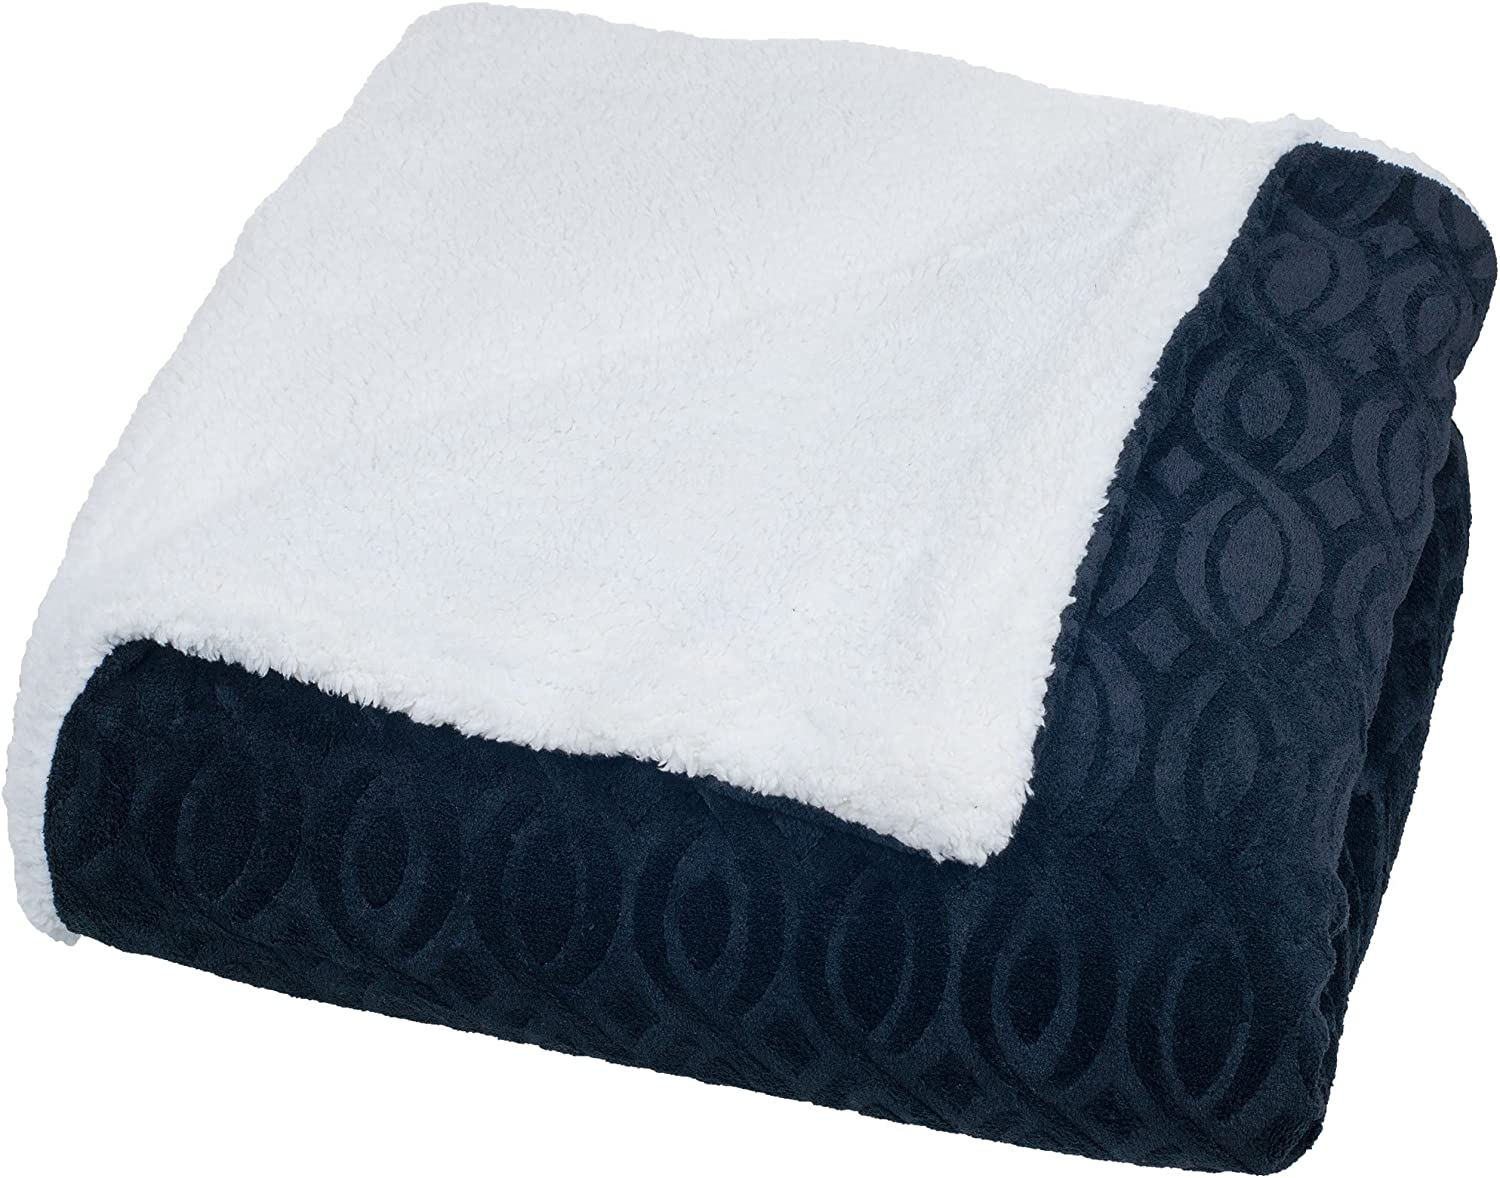 Bedford Home Geometric Etched Blanket with Sherpa, Twin, Black